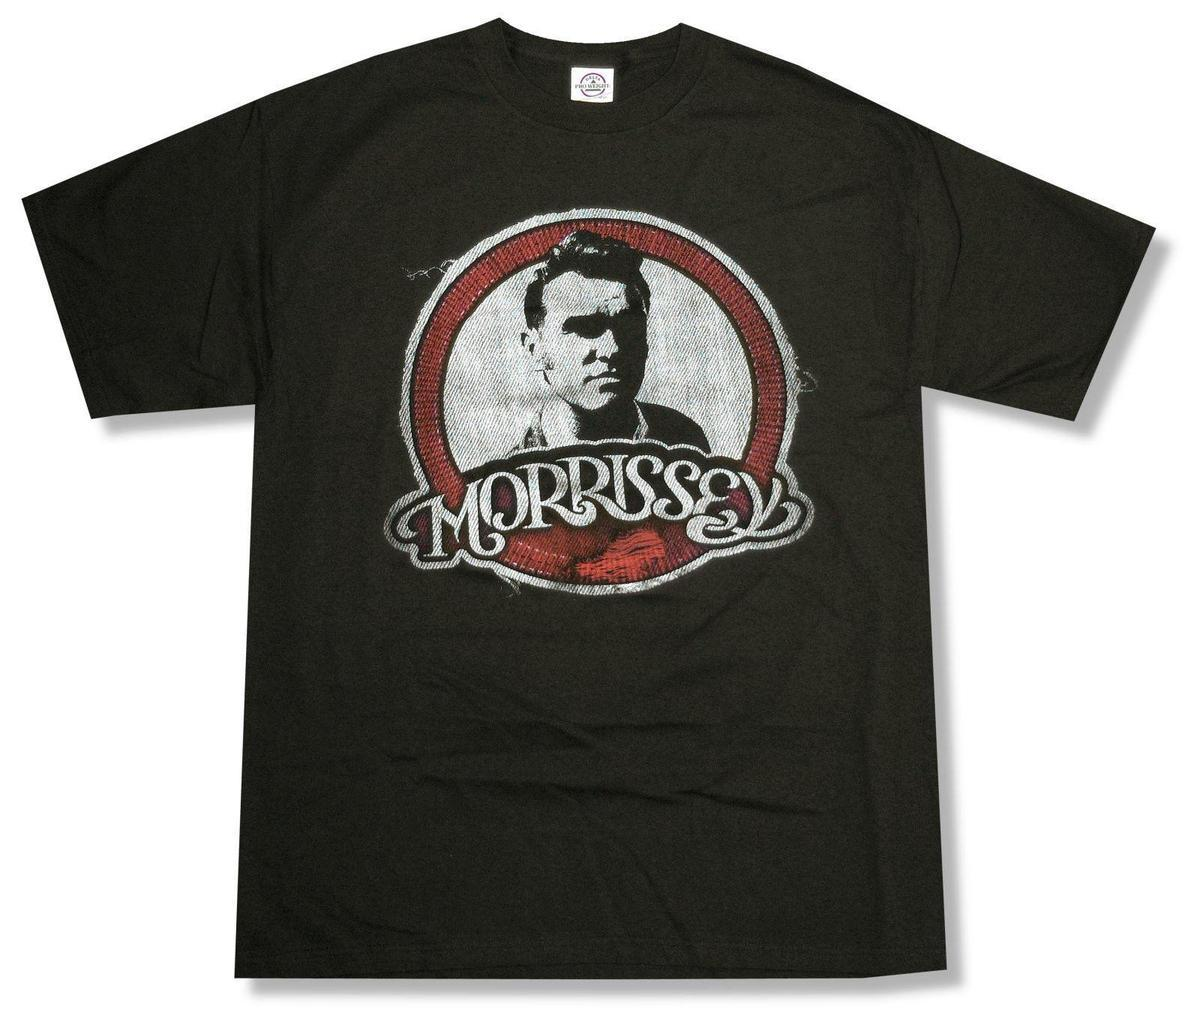 38ce967b7 MORRISSEY PATCH PORTRAIT BLACK T SHIRT NEW OFFICIAL ADULT THE SMITHS  Awesome T Shirts For Guys Cool Tee Shirt Designs From Yubin7, $27.6   DHgate.Com